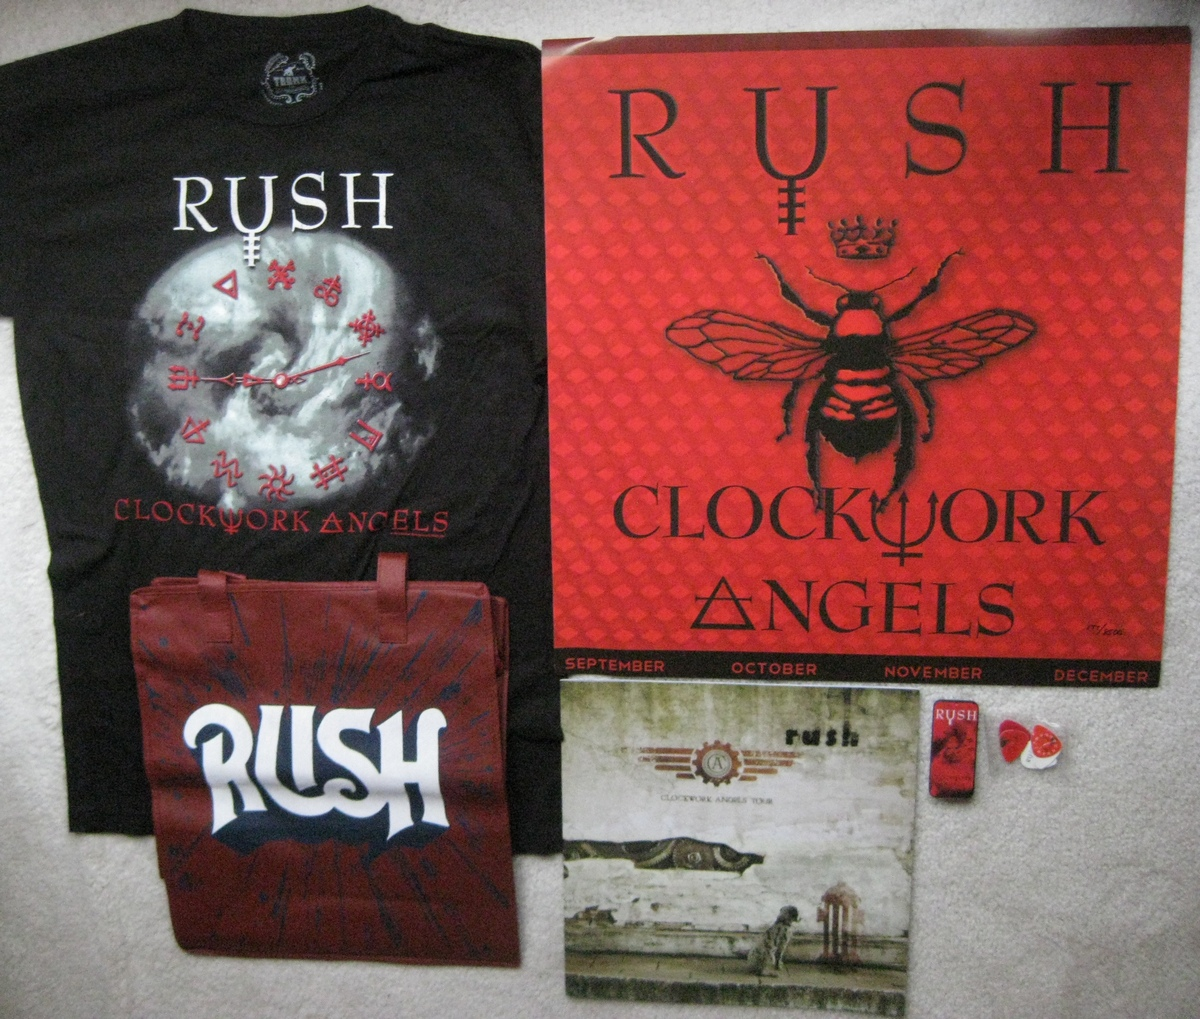 VIP ticket packages for the North American leg of Rush's current Clockwork Angels tour were sold through VIP Nation rather than Live Nation as they were on